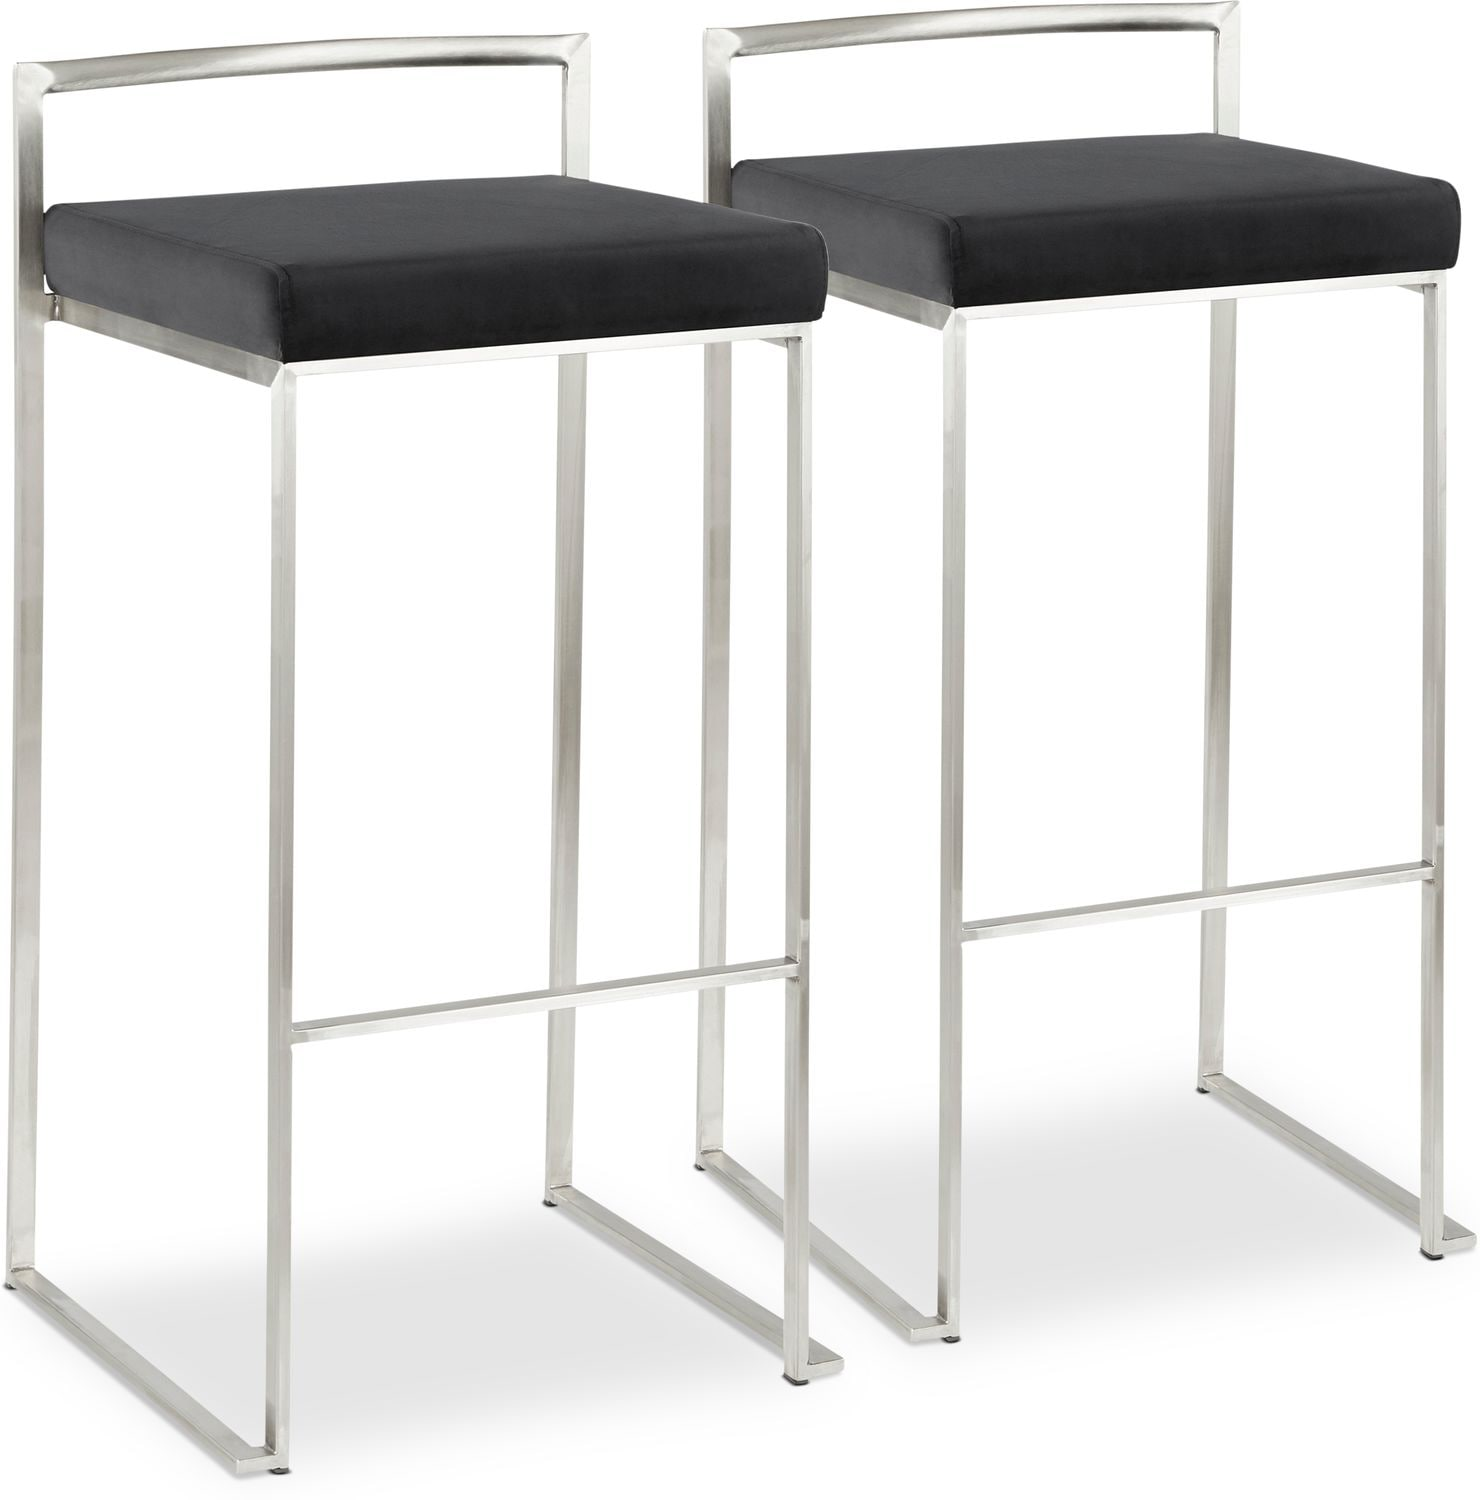 Dining Room Furniture - City Set of 2 Bar Stools